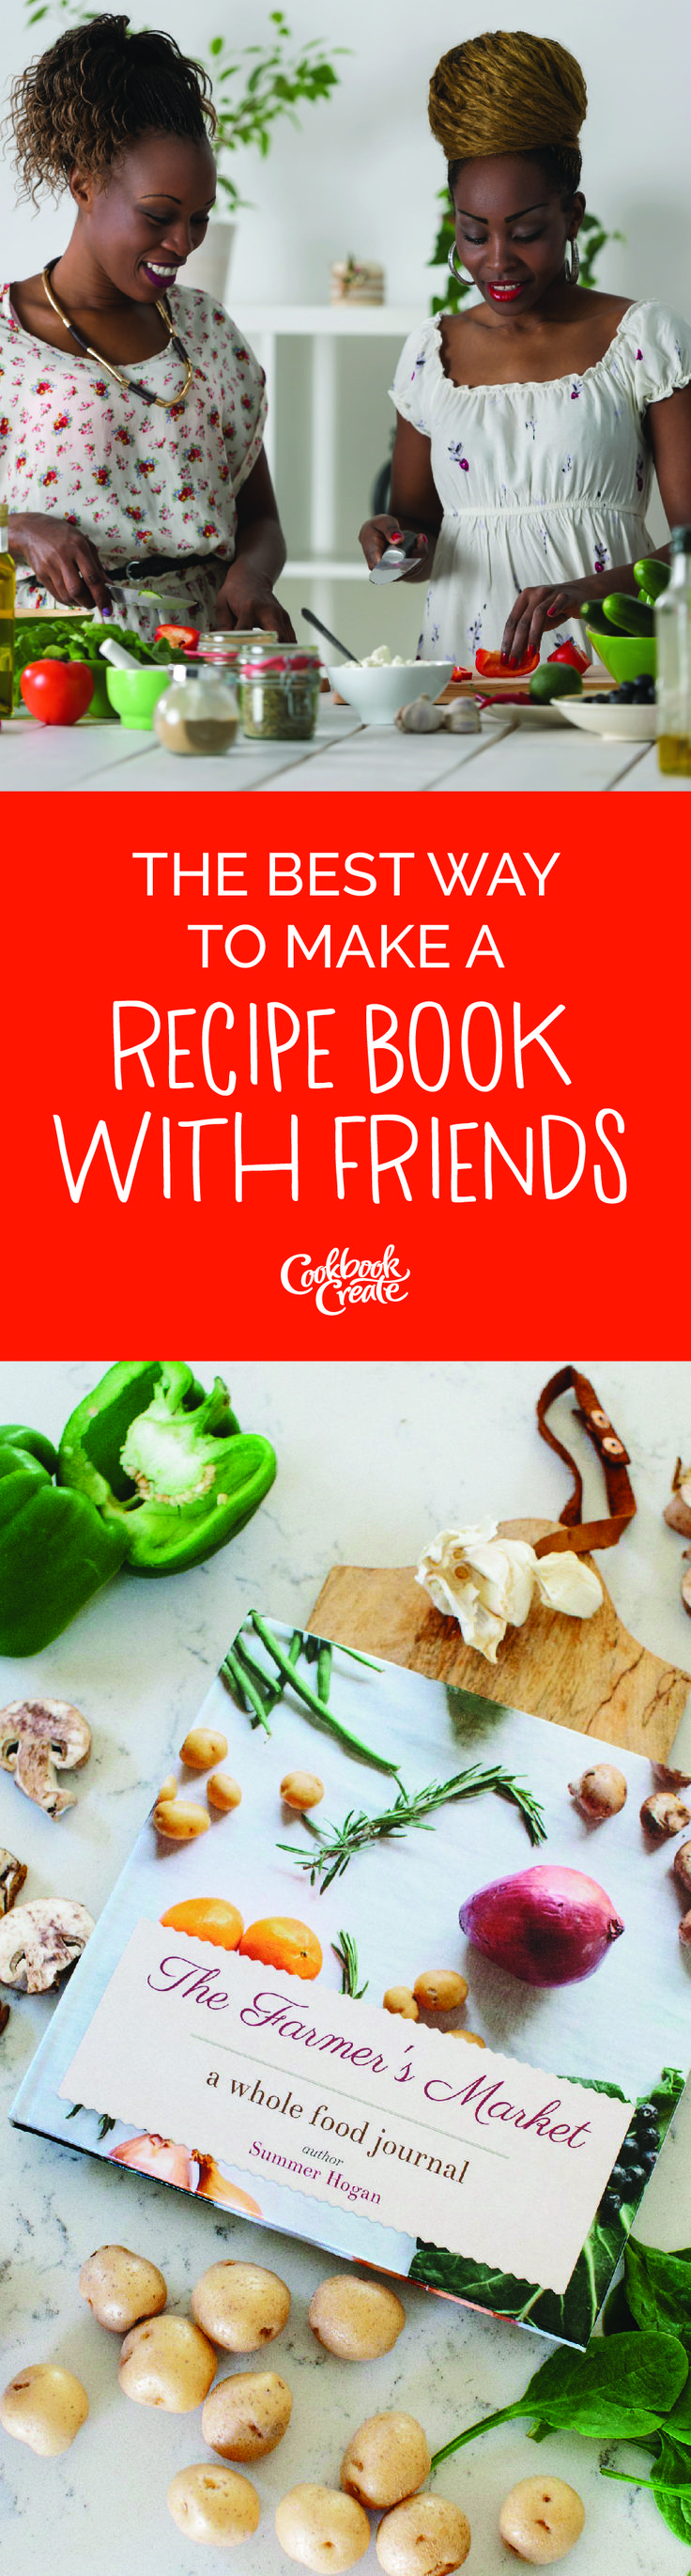 399 best cookbooks images on pinterest recipe books family make a diy cookbook with your groups recipes forumfinder Image collections